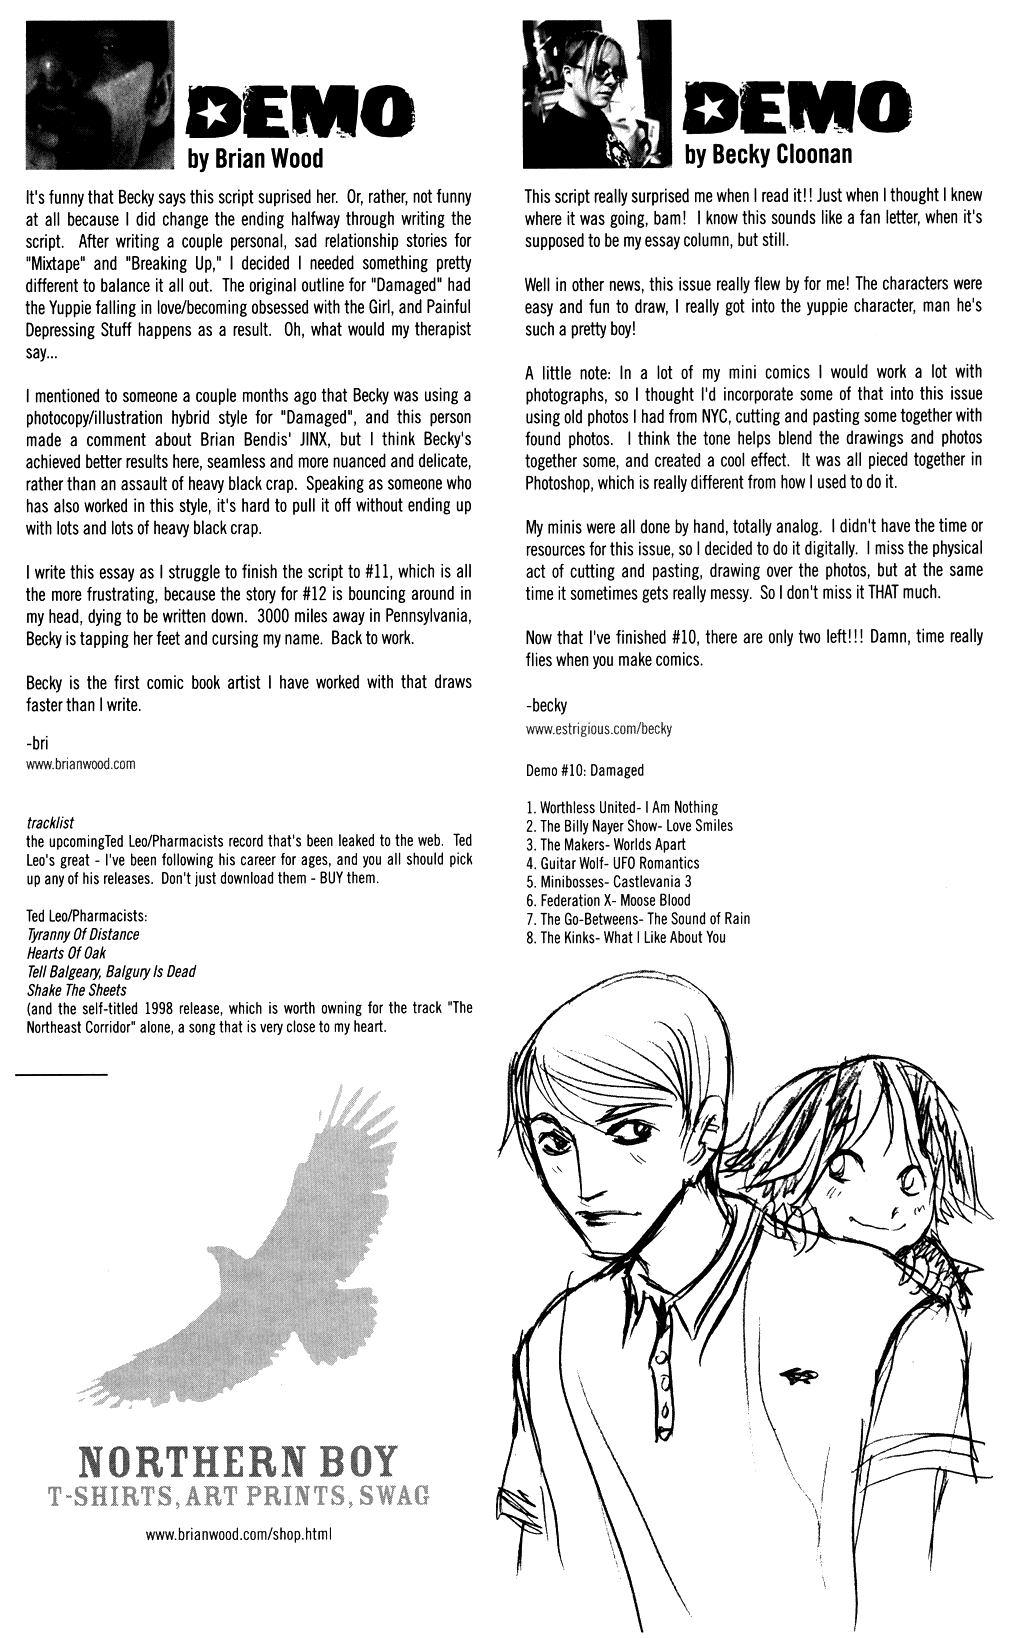 Read online Demo comic -  Issue #10 - 29